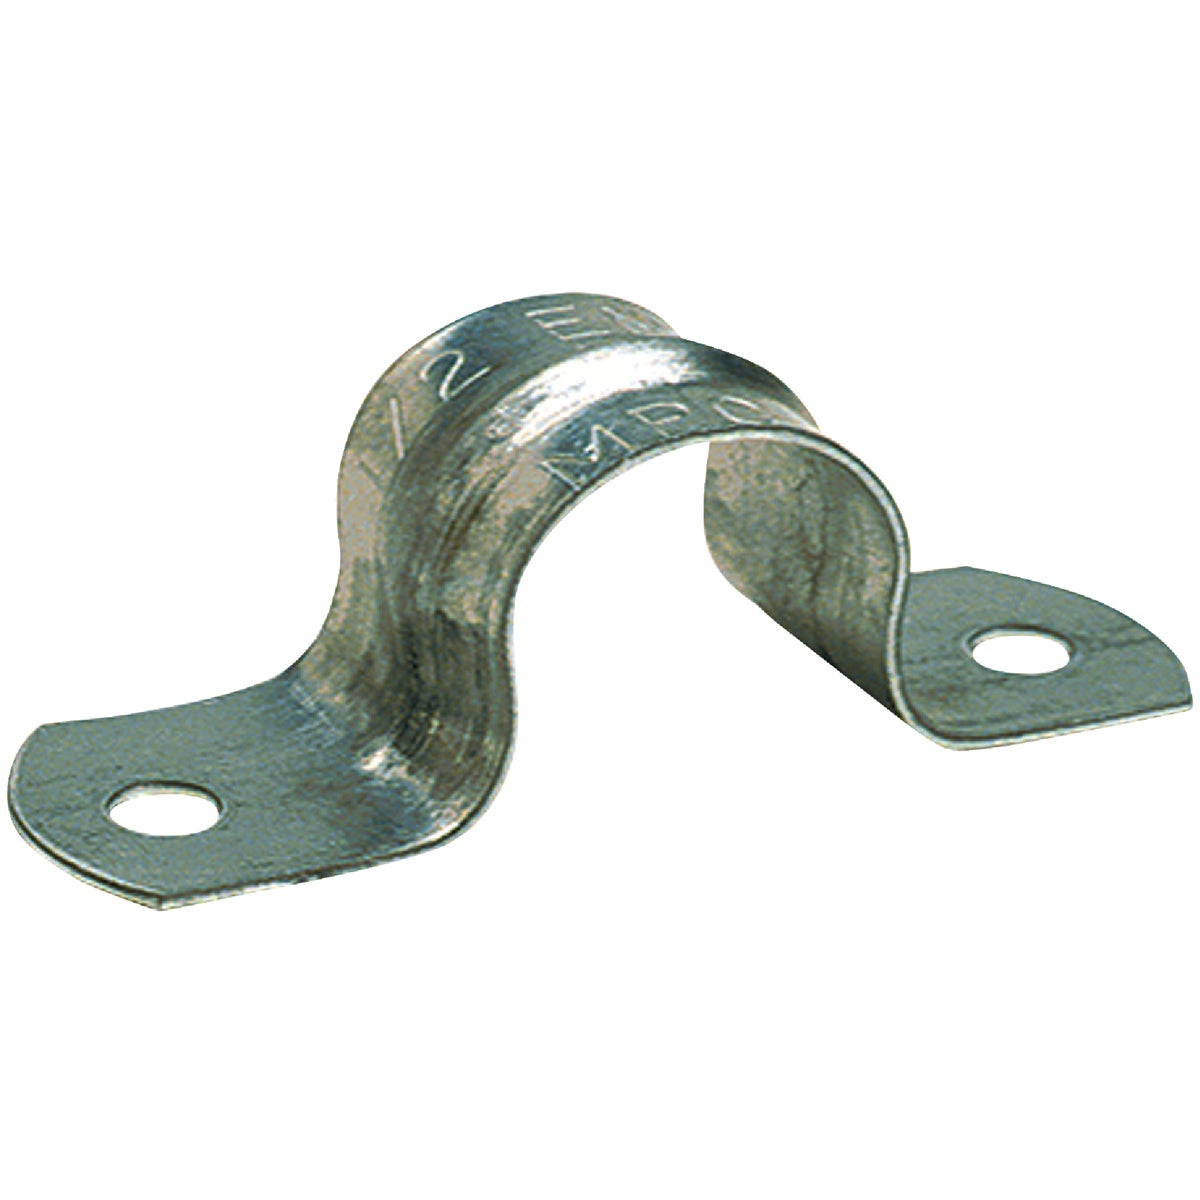 "50PC 3/4"" 2-HOLE STRAP - TS90250CP by Thomas & Betts"